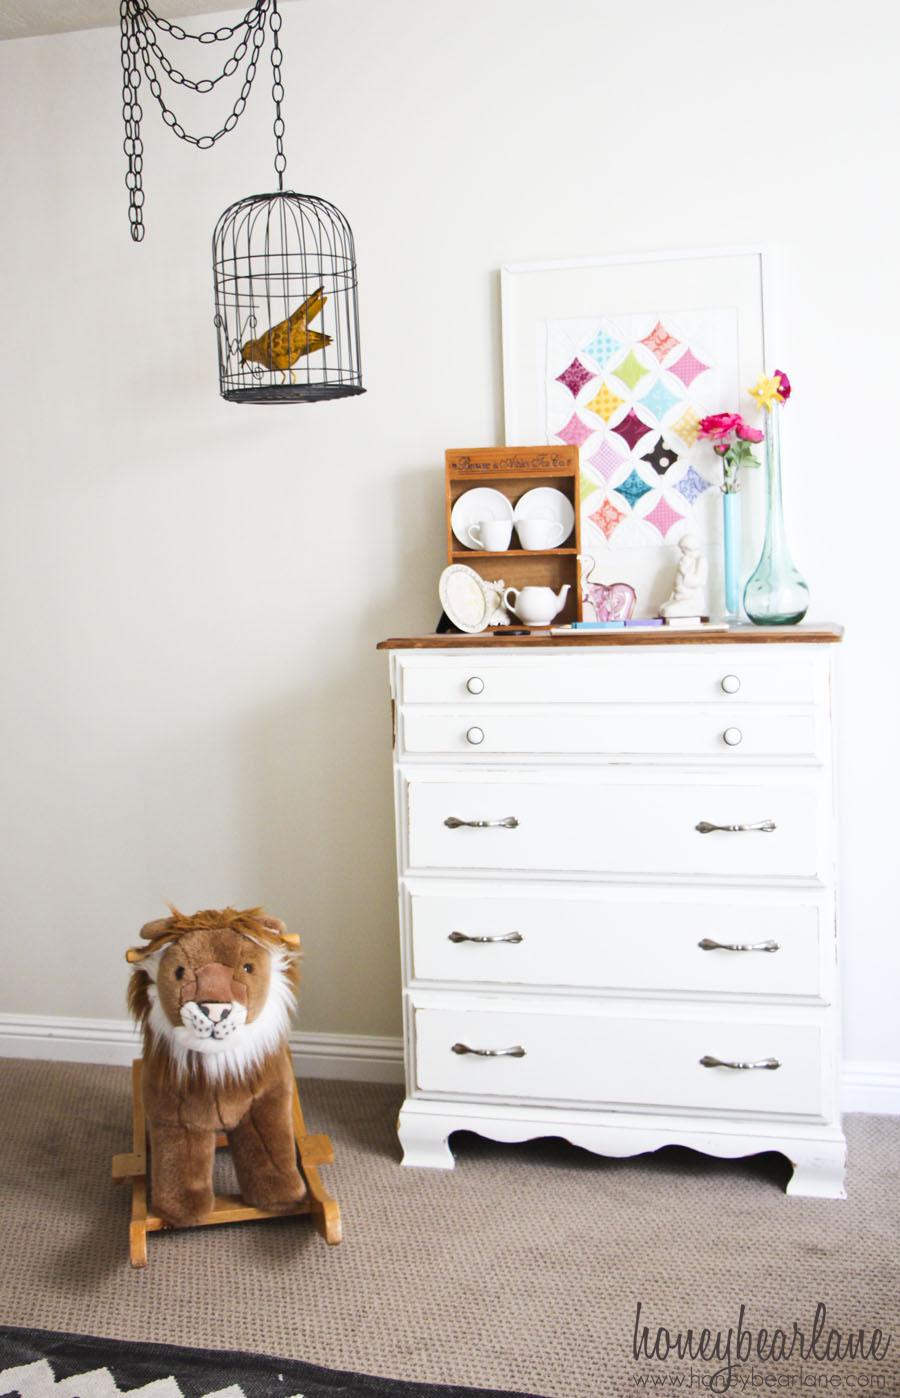 Cheap Black Dresser Vintage Circus Nursery Reveal! - Honeybear Lane